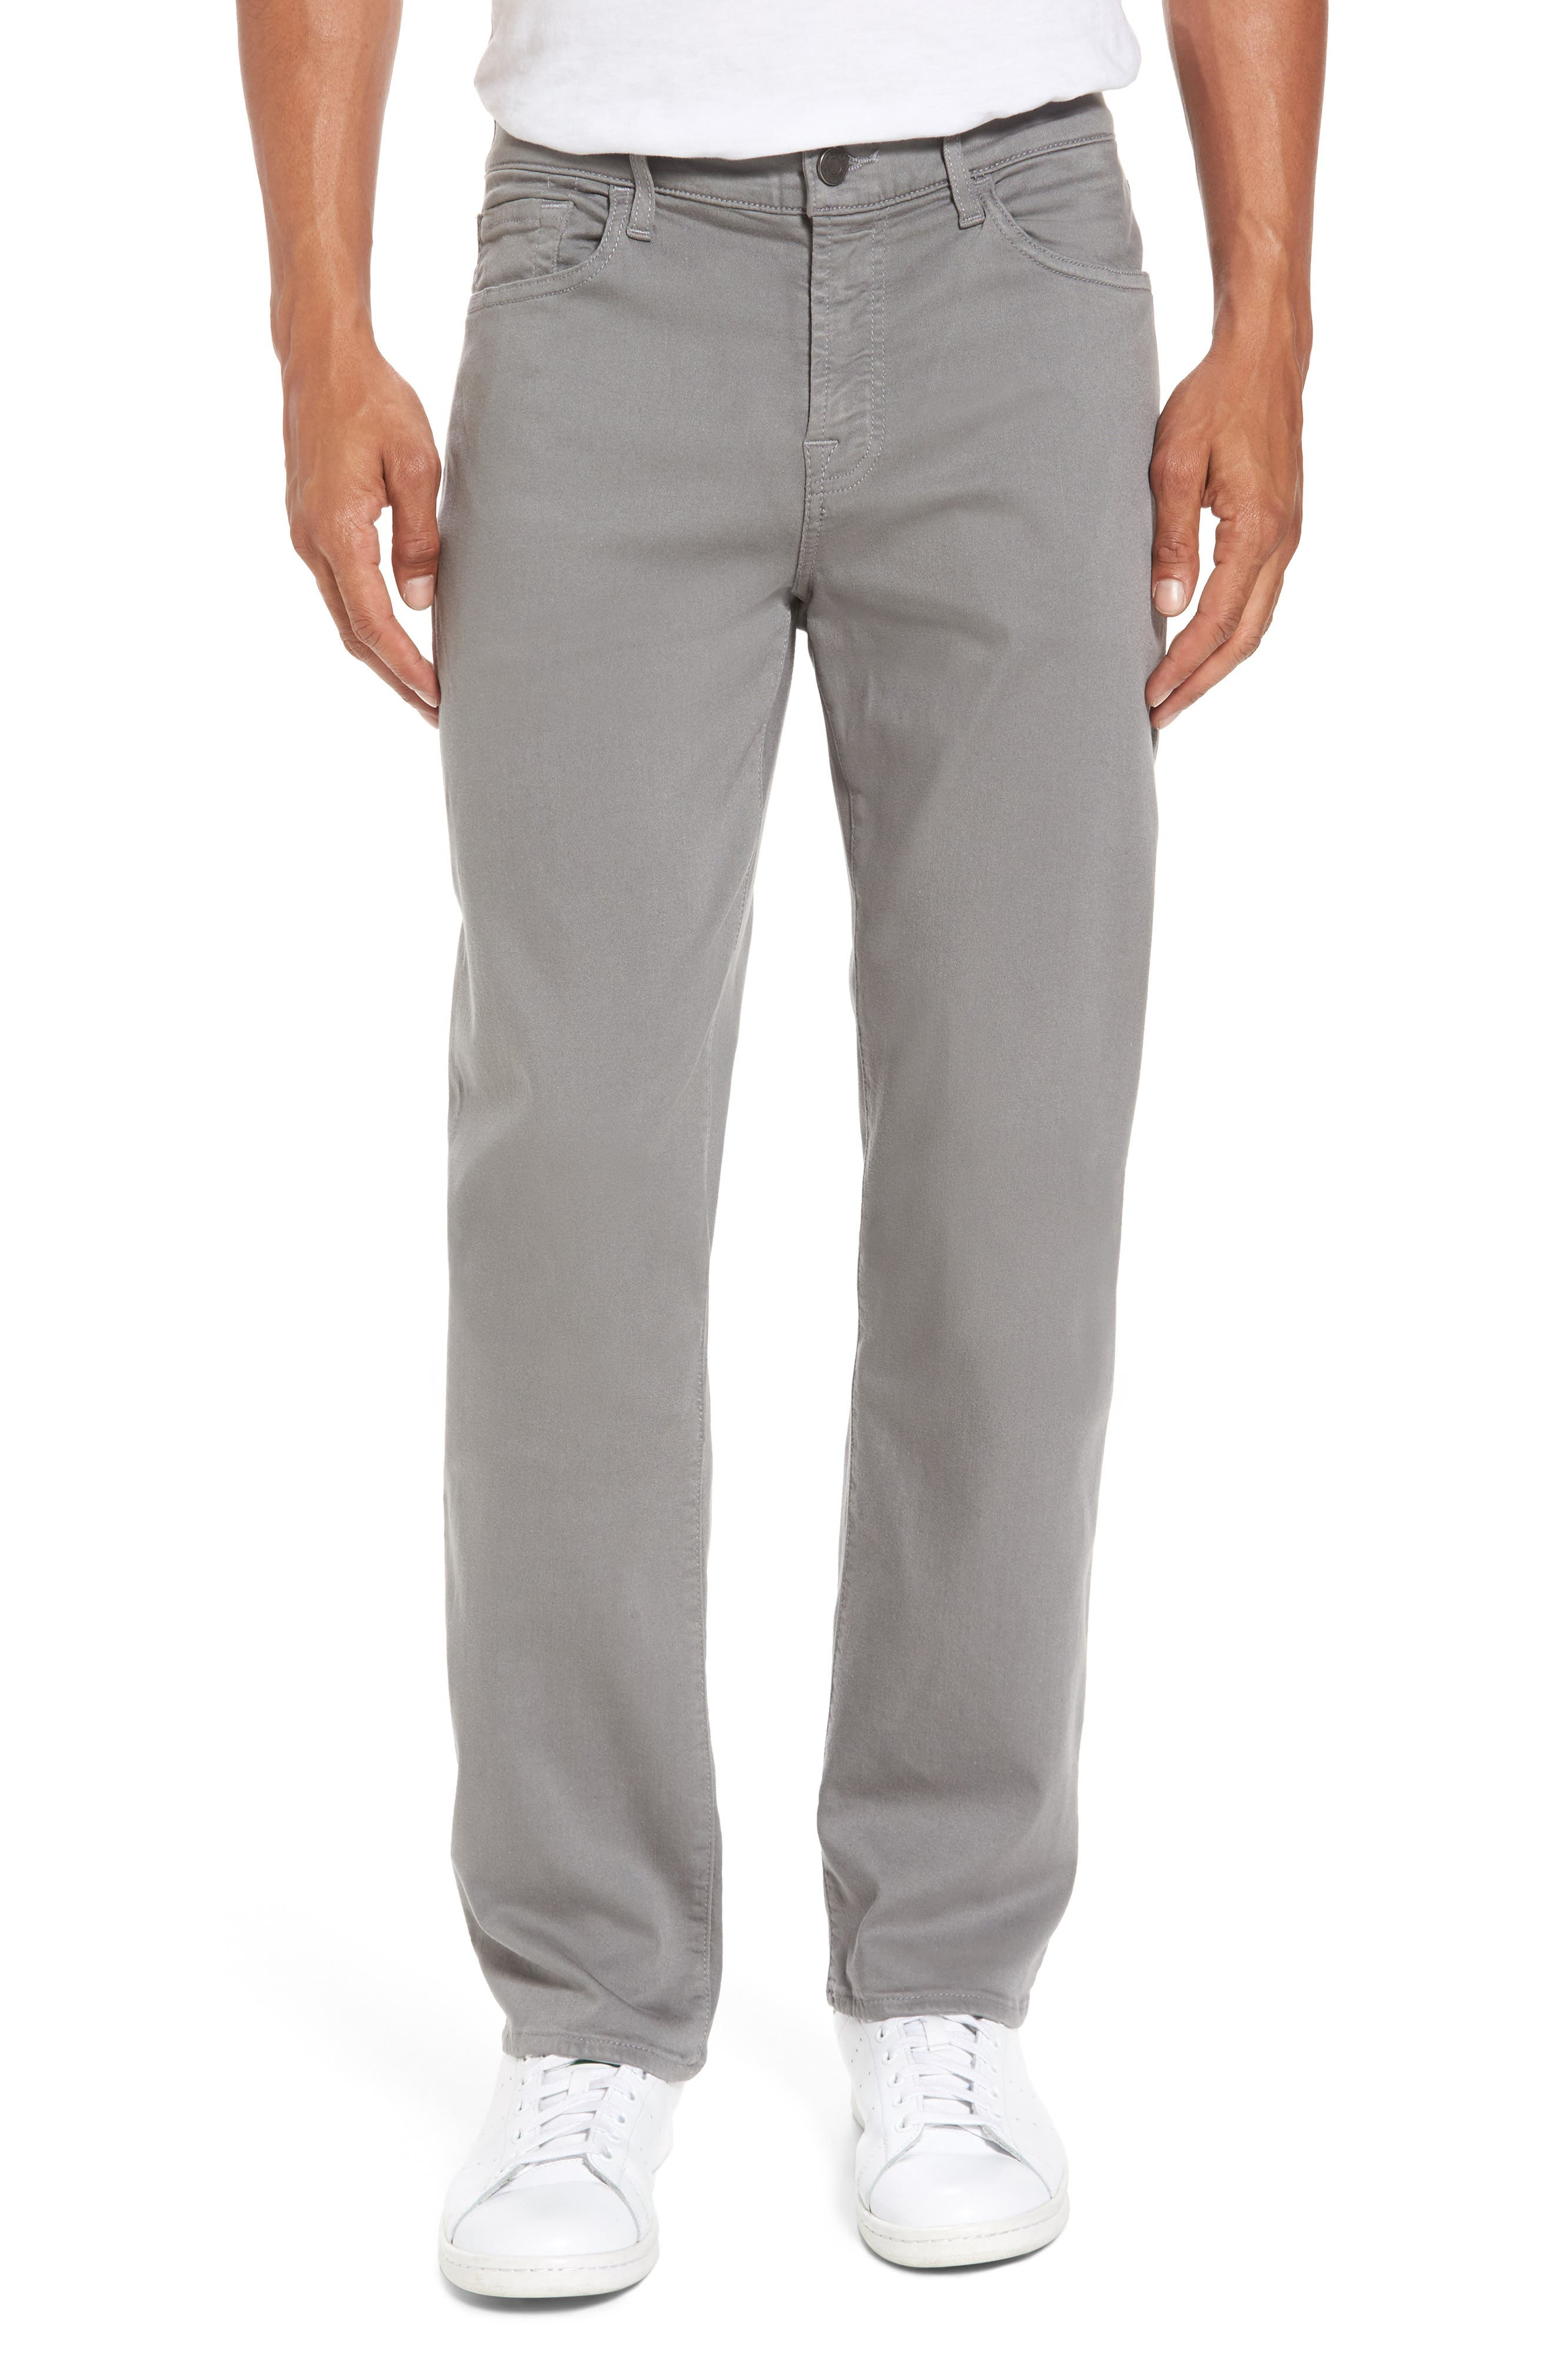 7 For All Mankind® Slimmy Luxe Sport Slim Fit Jeans (Shaded Stone)